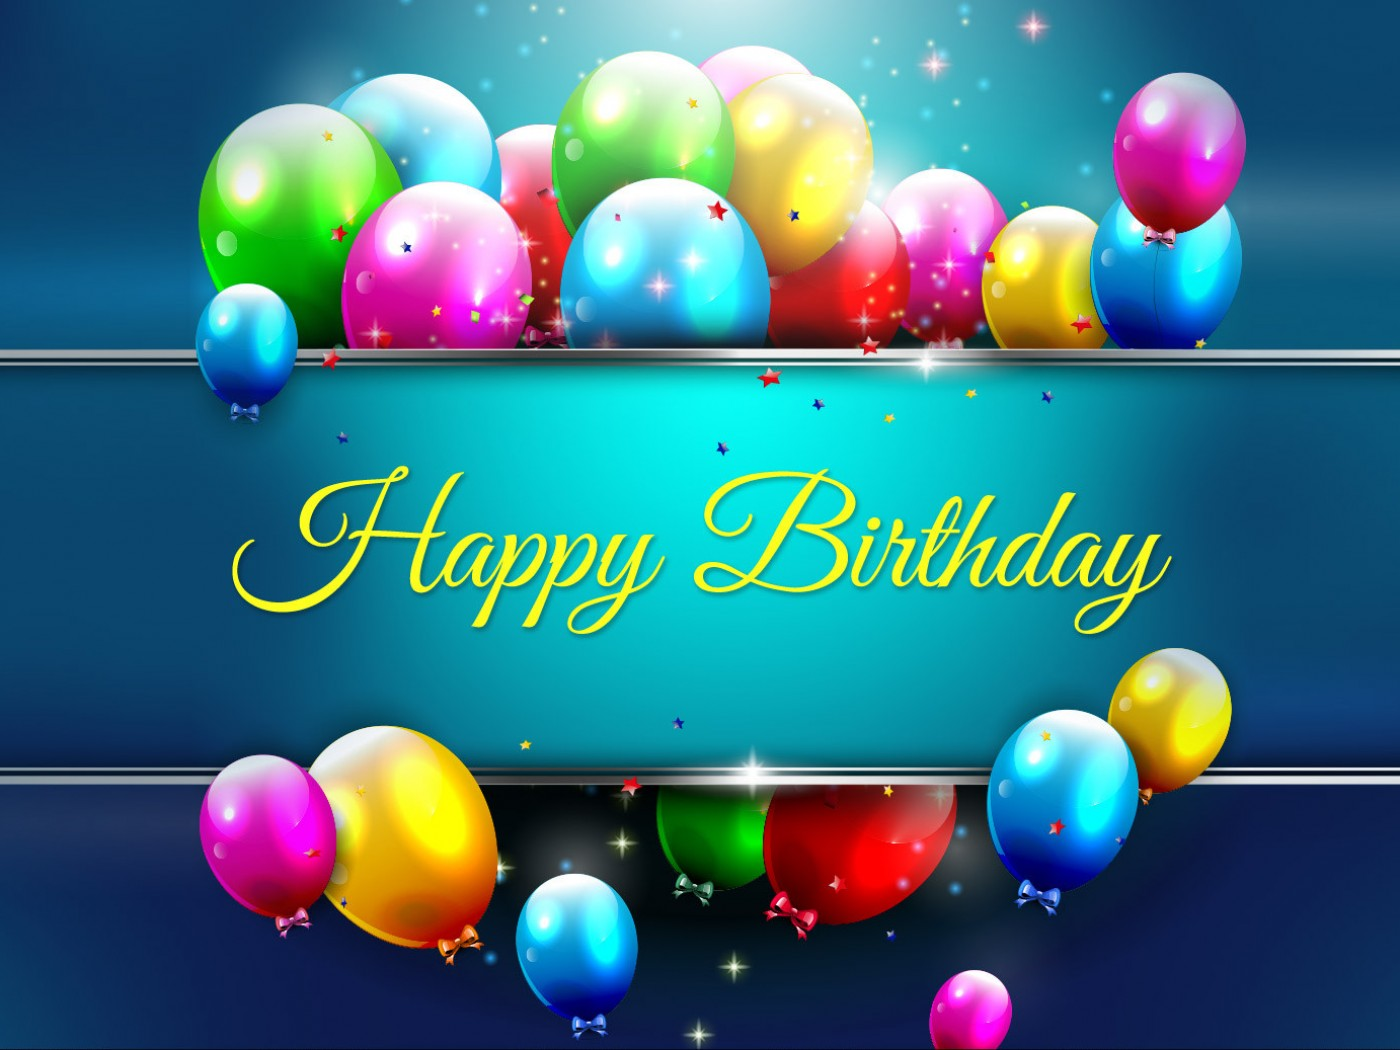 Happy Birthday Pics Images wallpapers pictures and photos 1400x1050